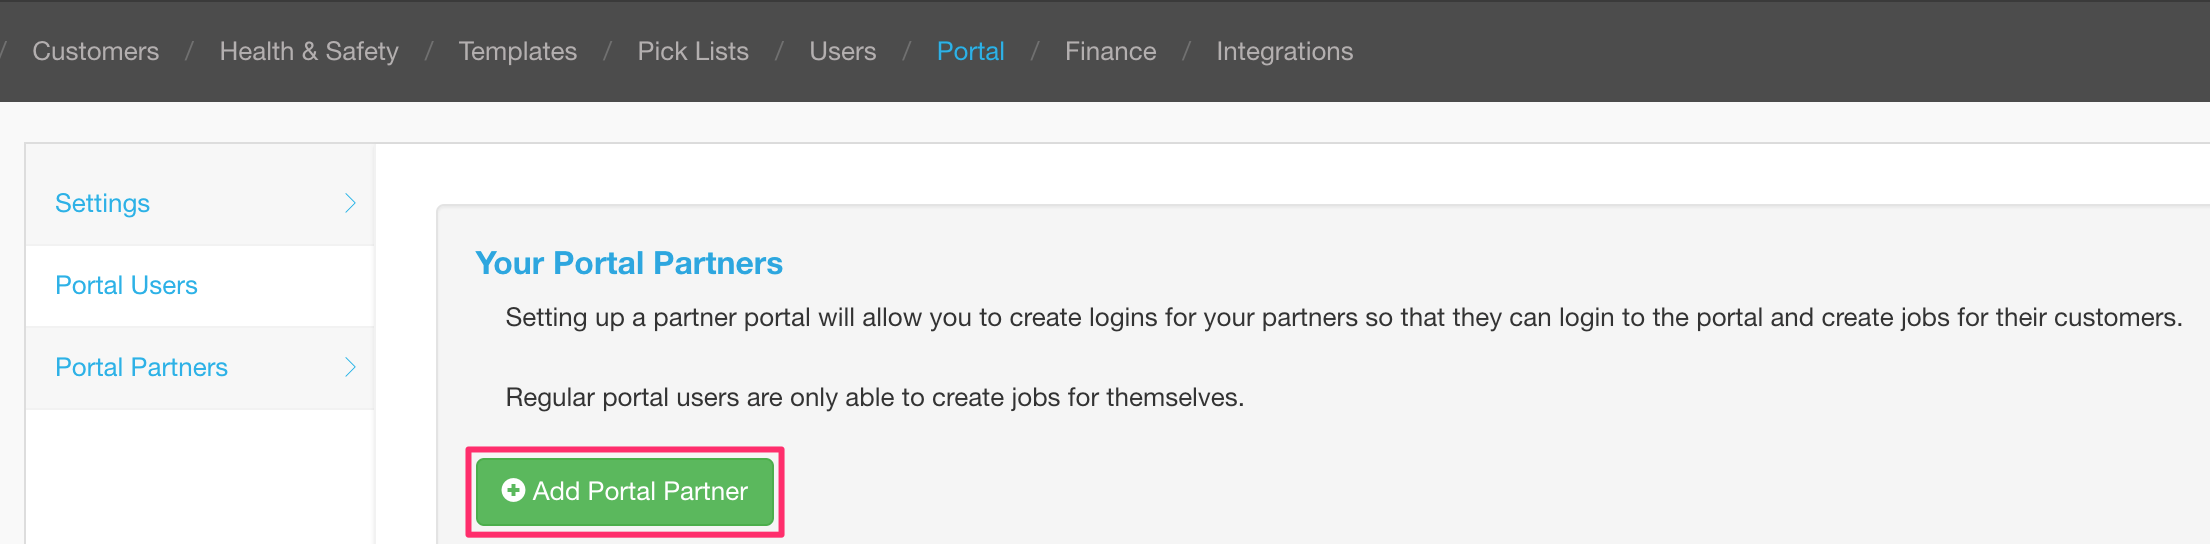 Portal_Partners___vWork_-_Mobile_Workforce_Platform.png